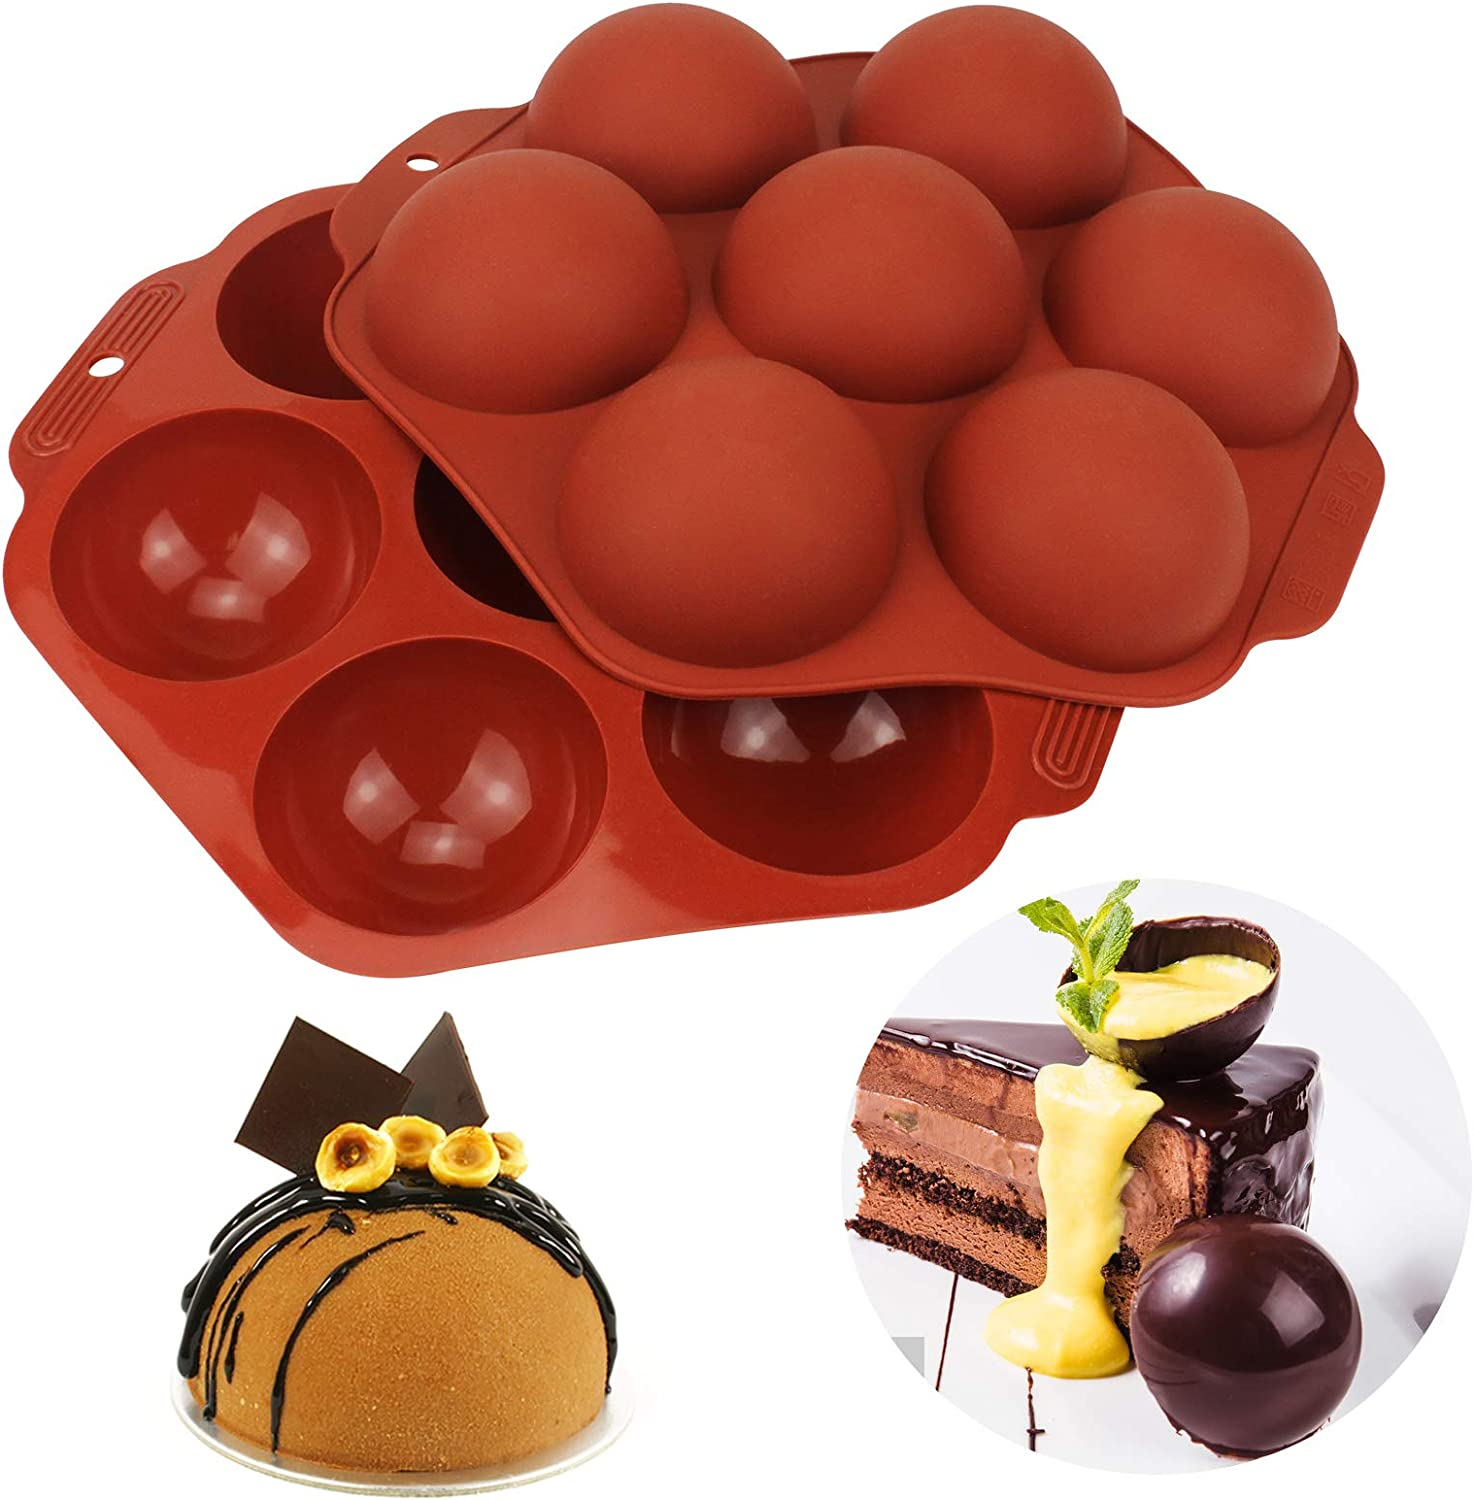 Newest Seven Holes Round Silicone Molds For Baking, Chocolate, Cake, Jelly, Dome Mousse, Pudding - NEW Medium Semi Sphere Silicone Molds, chocolate molds silicone sphere (Two Pcs)